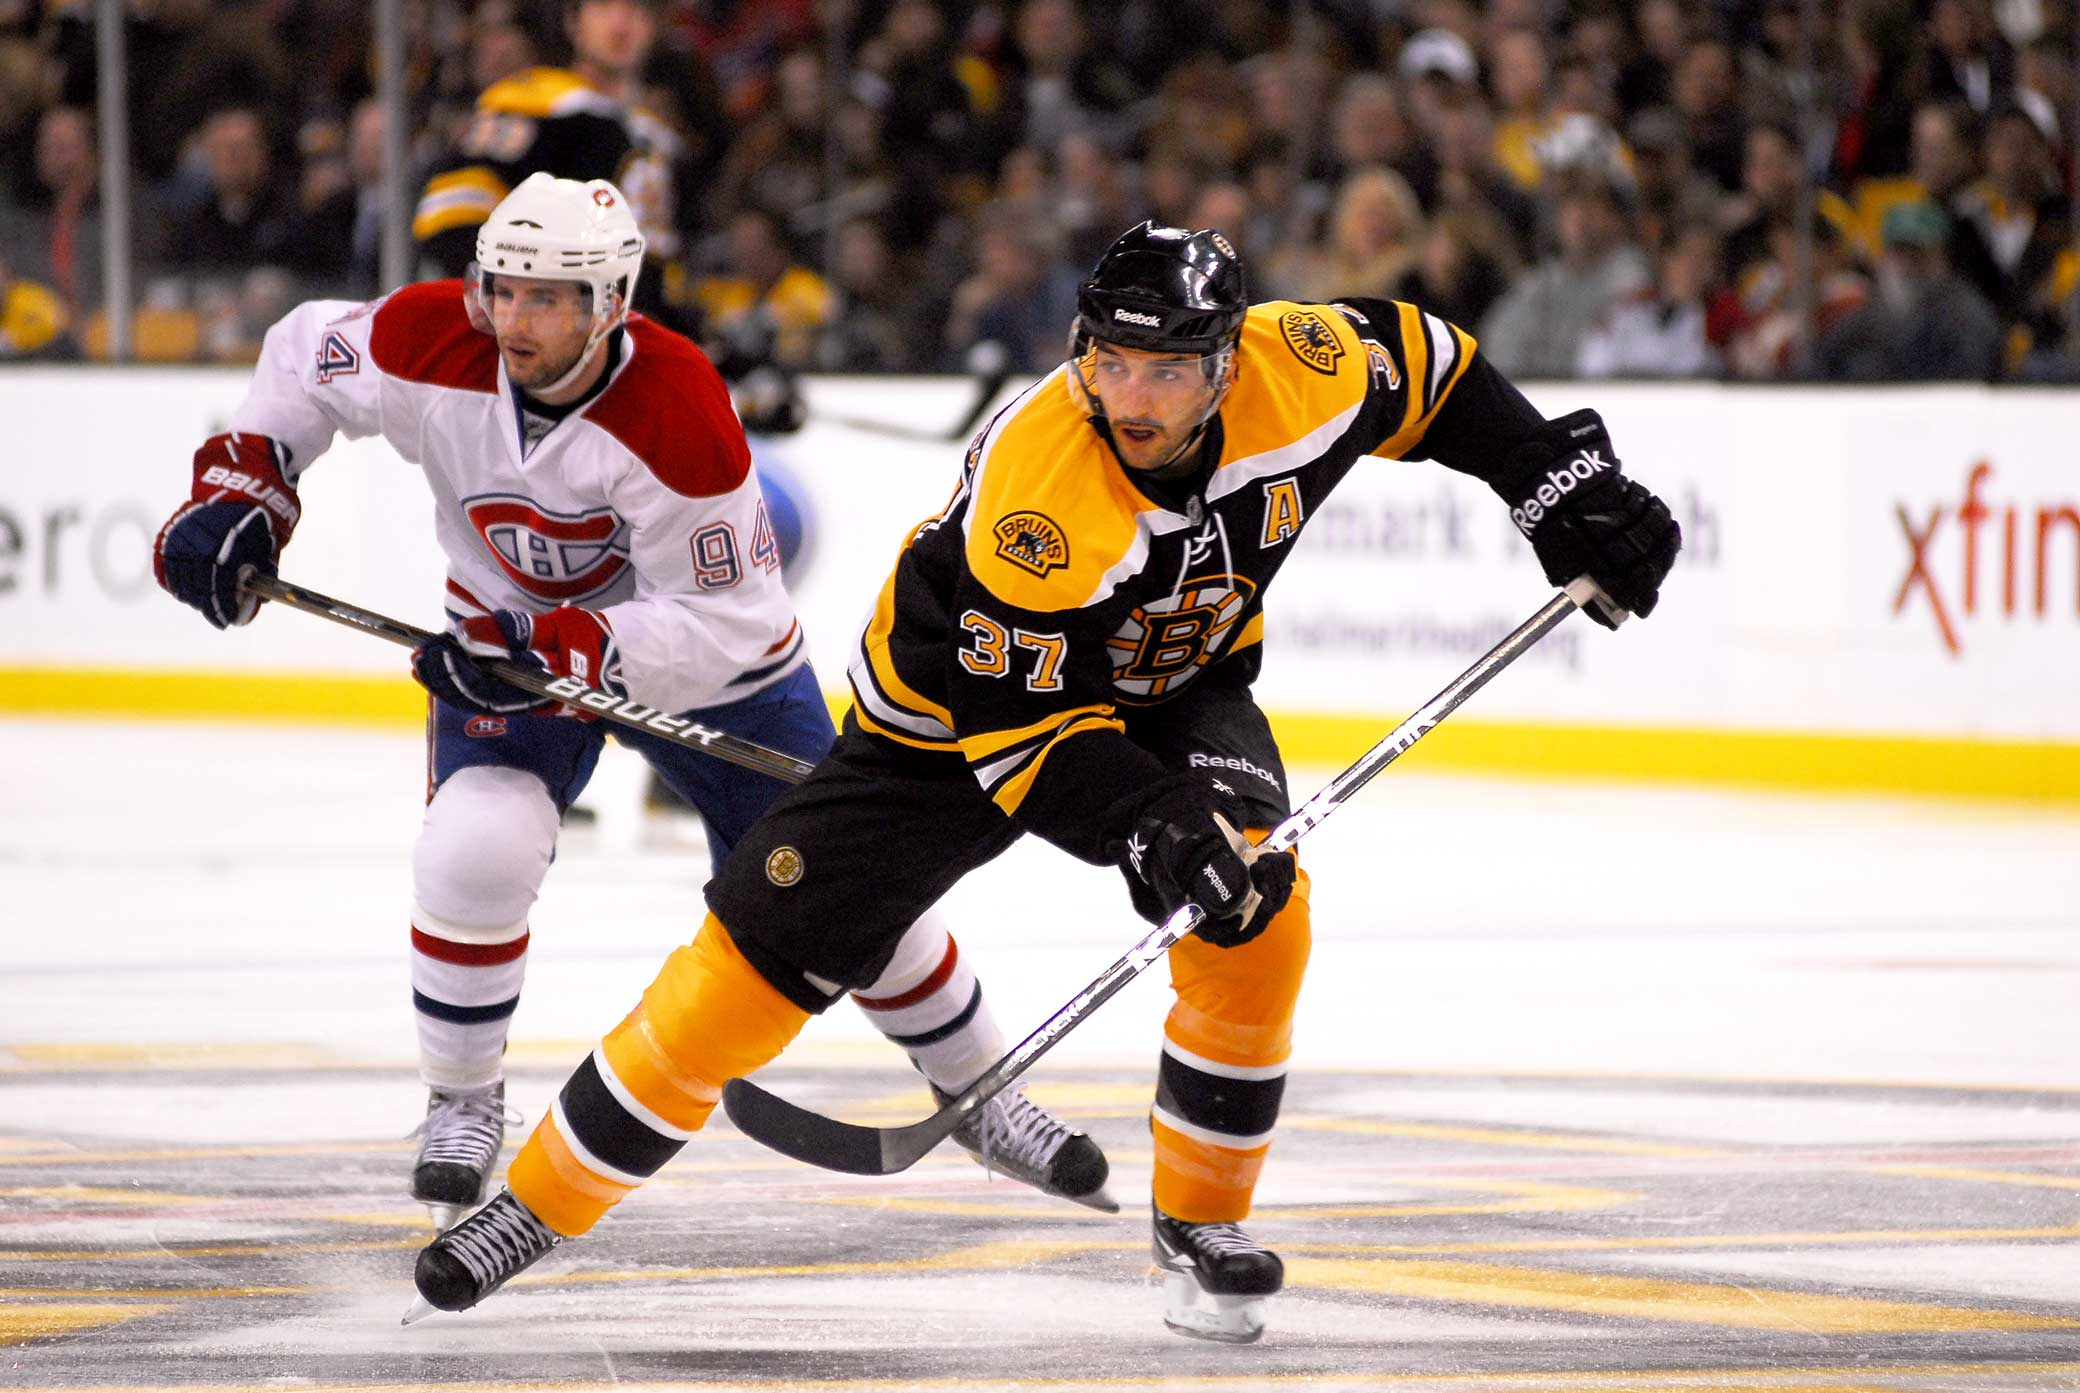 Patrice Bergeron Boston Bruins #37